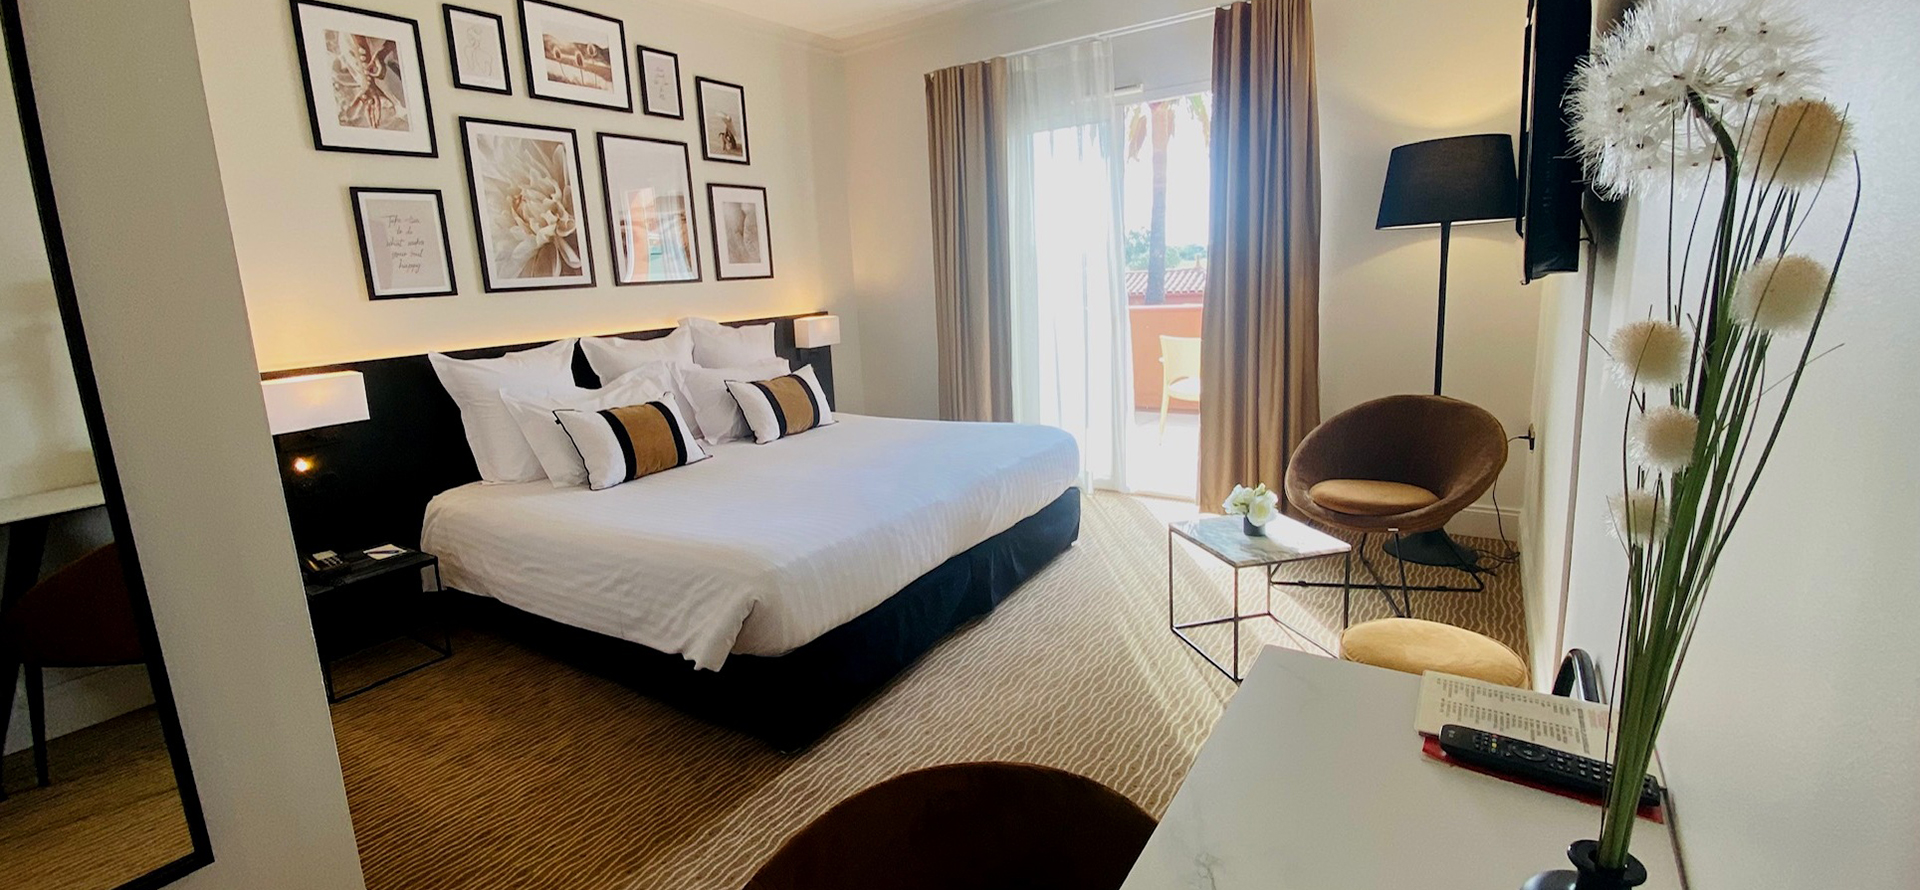 Top-quality room with view over the golf course in the 4-star hotel in Cap d'Agde: the Palmyra Golf